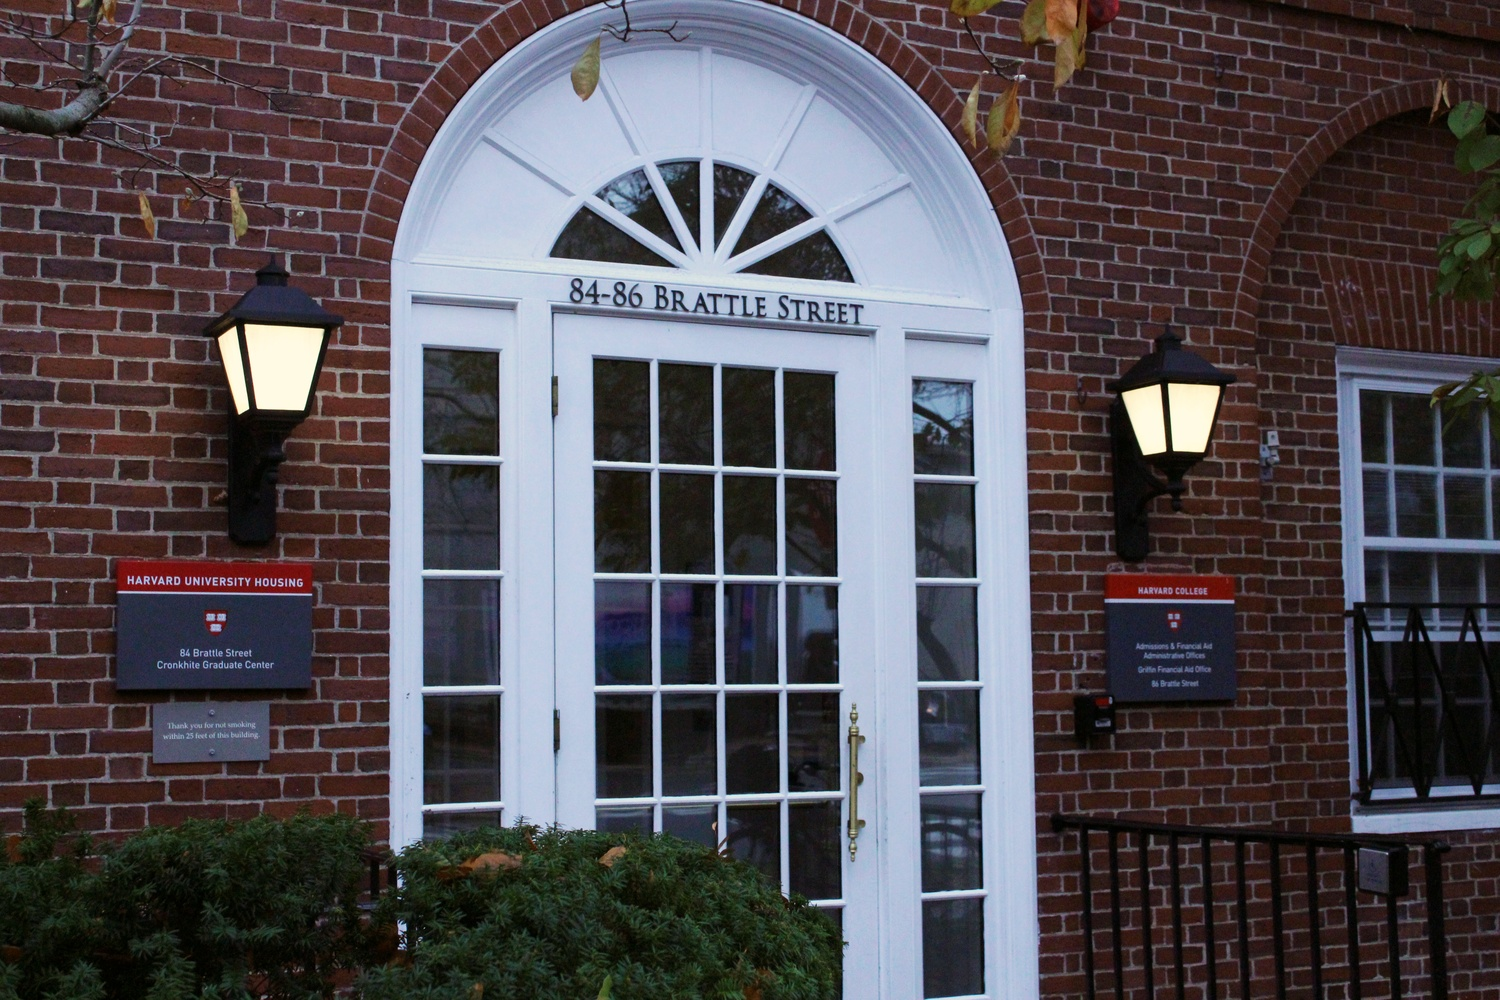 Harvard's Office of Admissions and Financial Aid lies on Brattle Street.